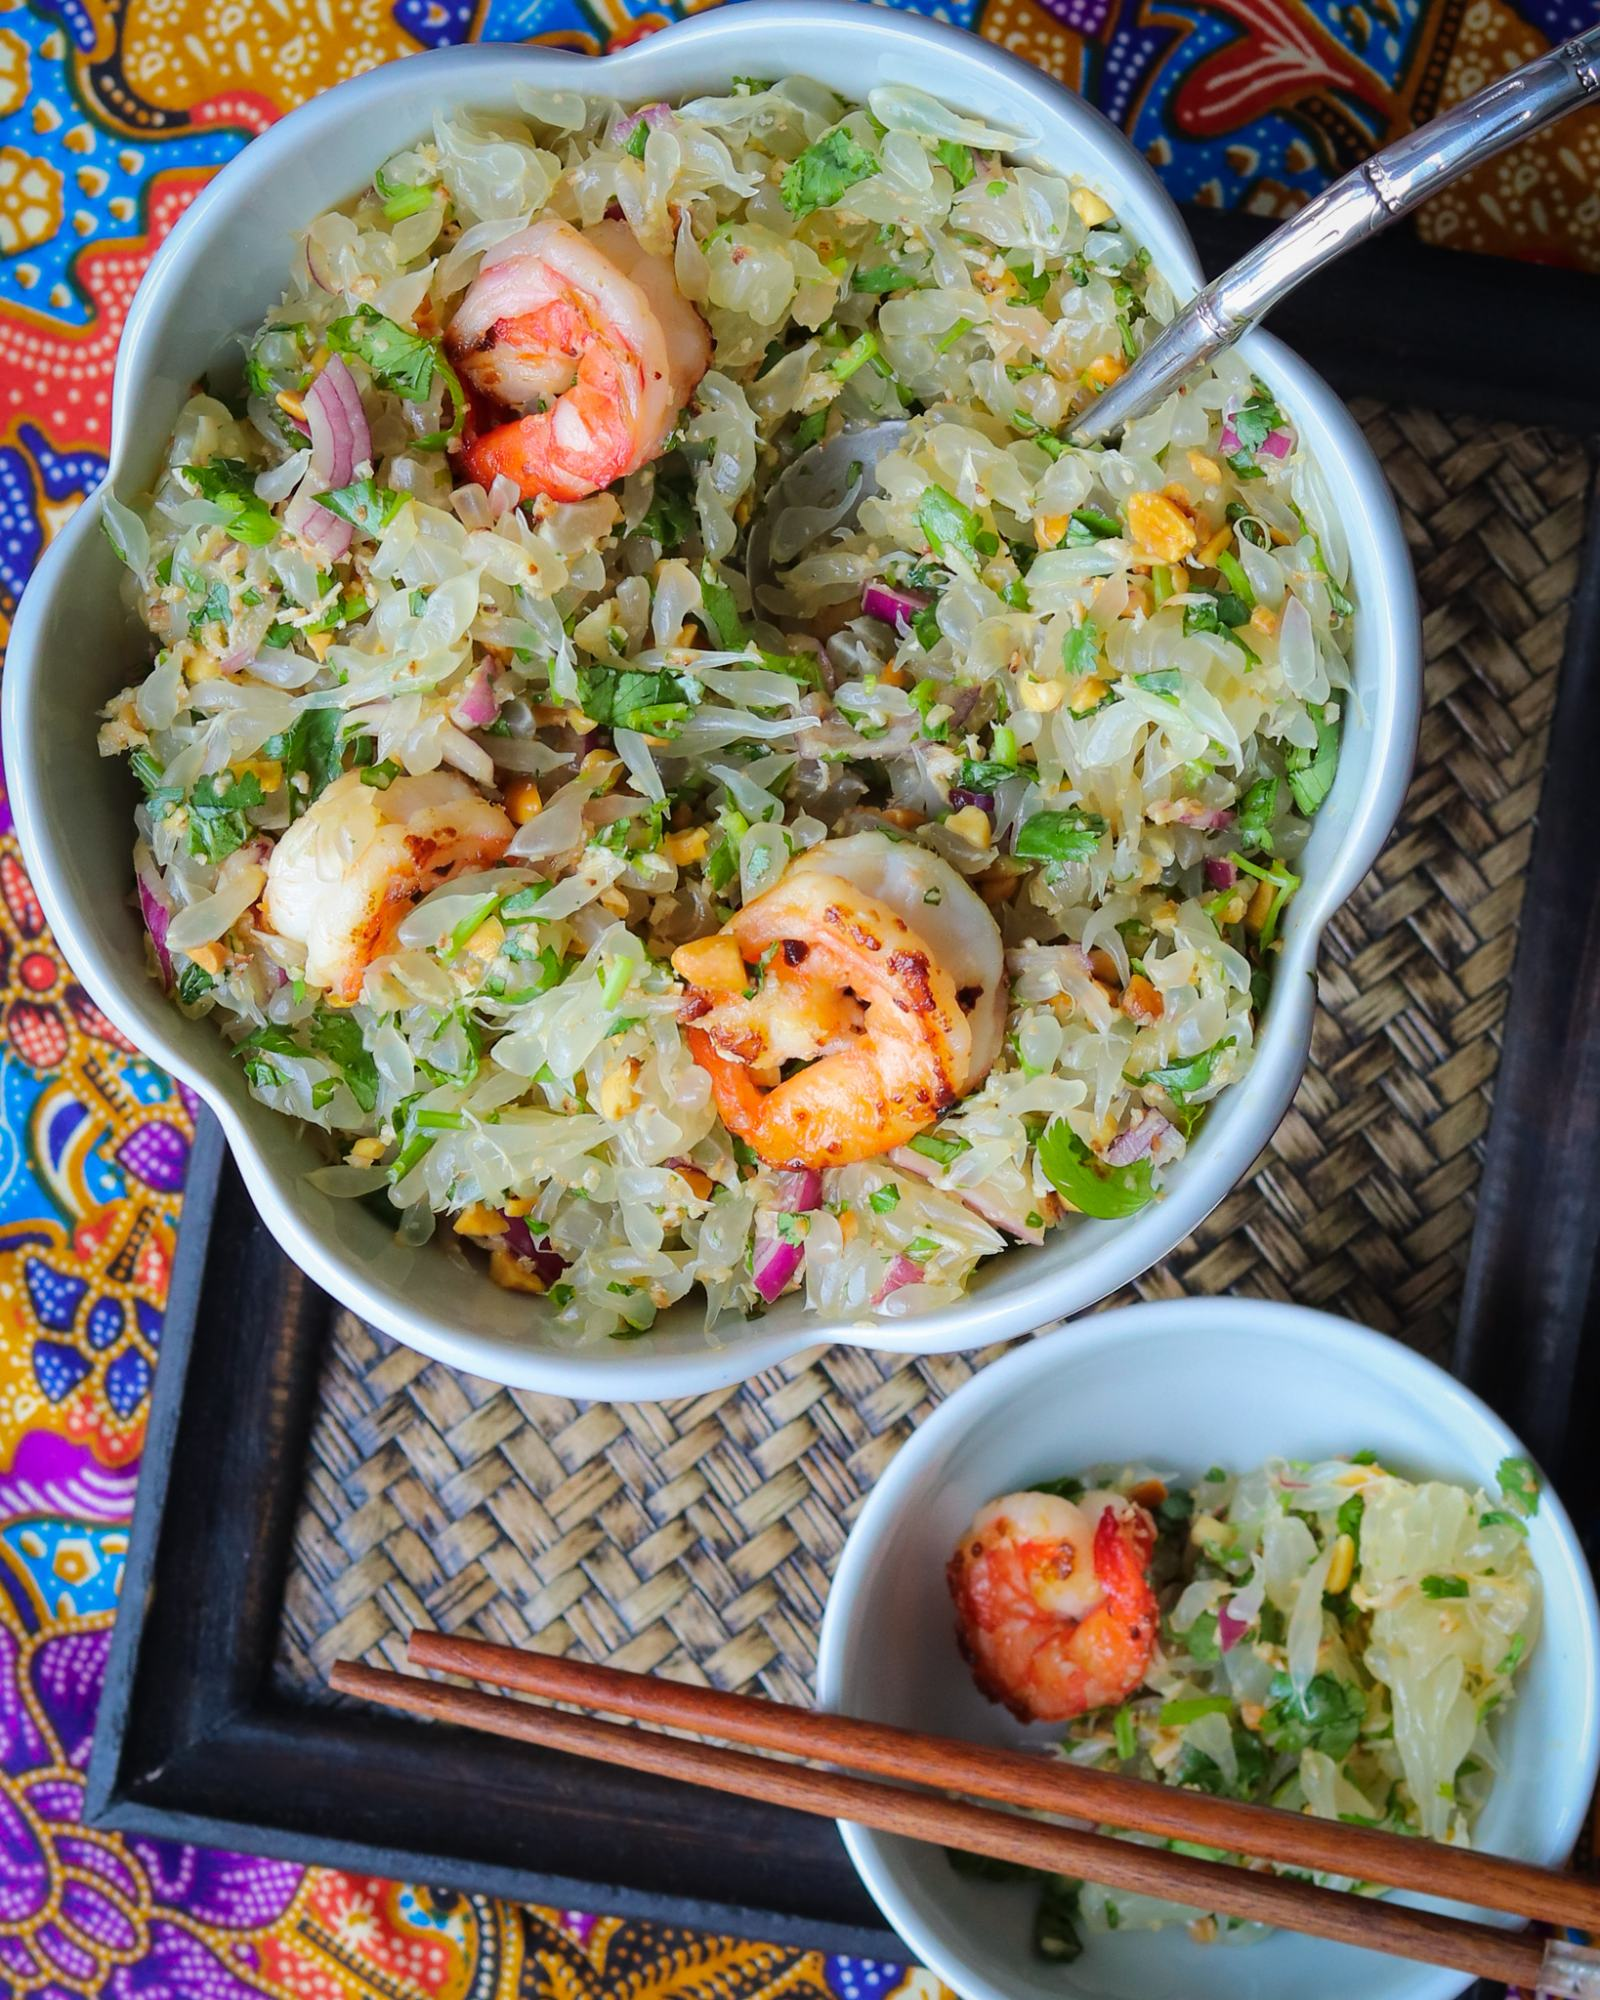 Thai Pomelo Salad with Chili Prawns from Laura The cooking Globetrotter